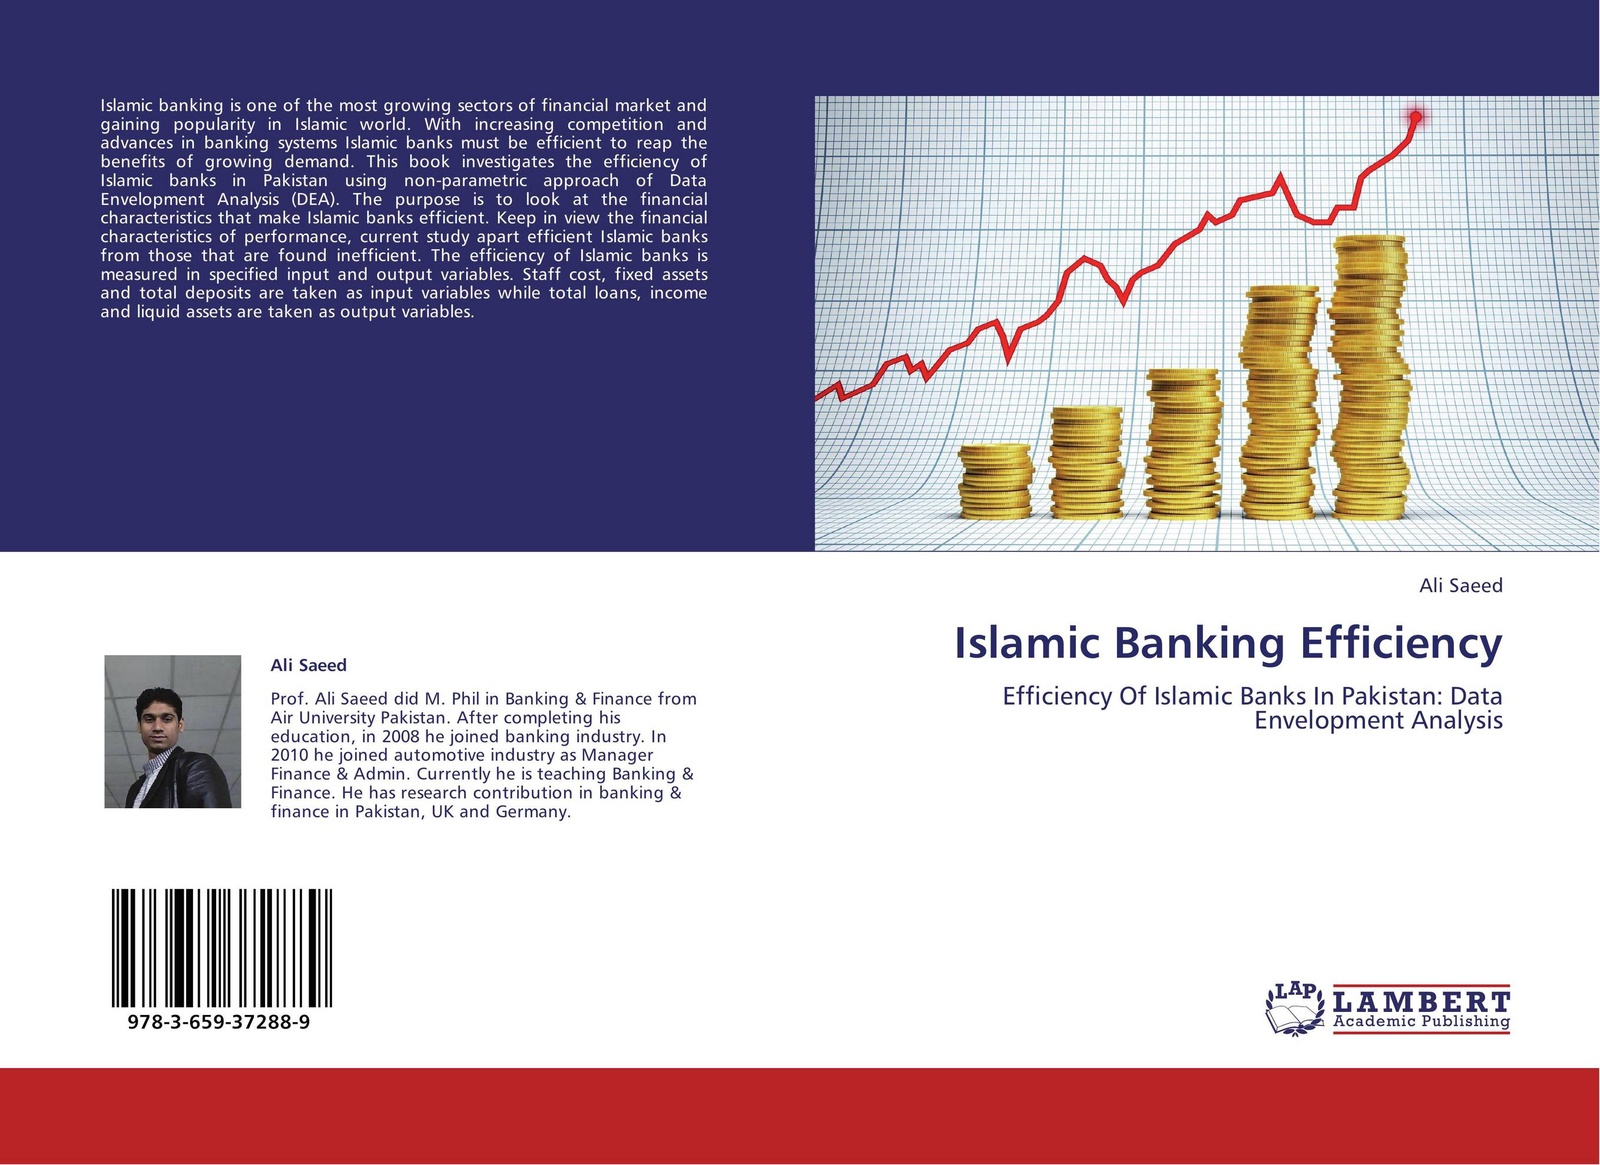 Ali Saeed Islamic Banking Efficiency